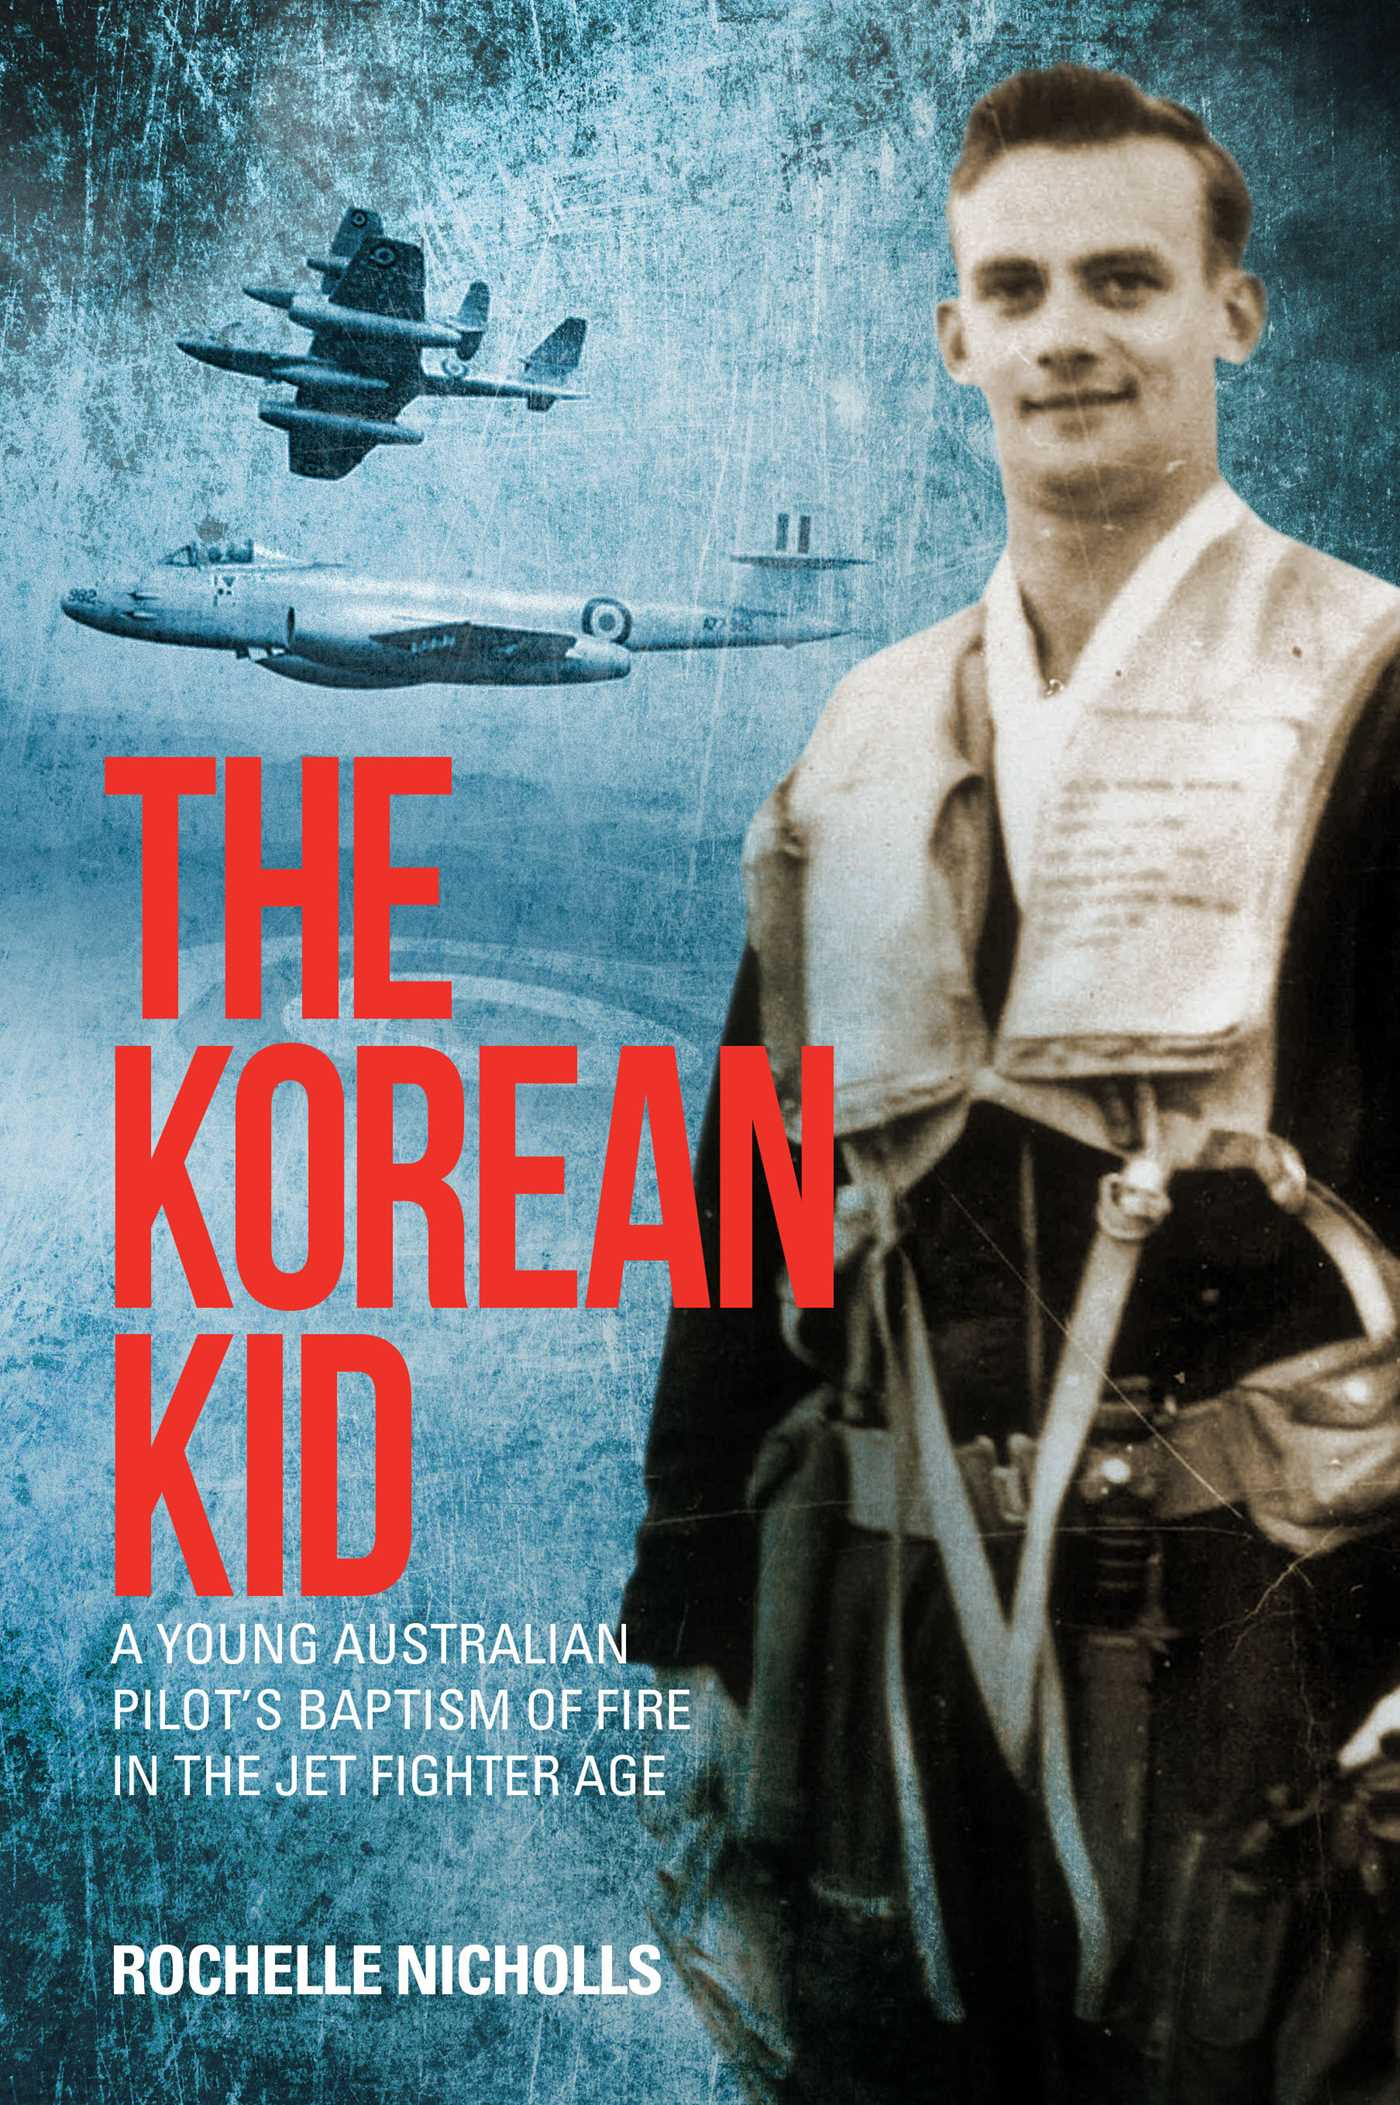 [PDF] [EPUB] The Korean Kid: A Young Australian Pilot's Baptism of Fire in the Jet  Fighter Age Download by Rochelle Nicholls